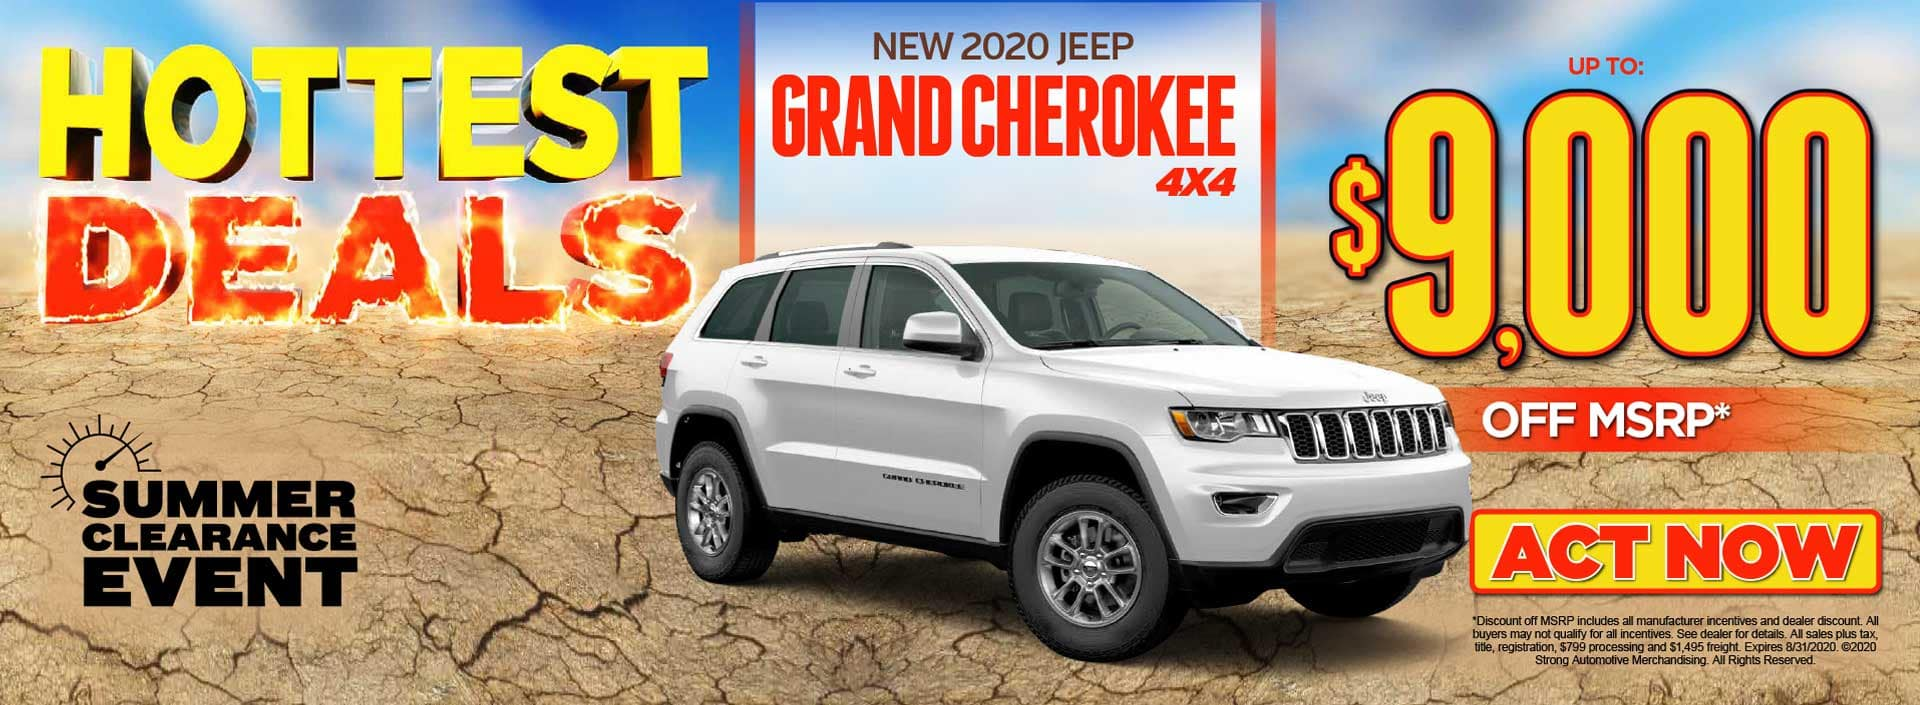 2020 JEEP GRAND CHEROKEE 4X4 – Up to $9,000 Off MSRP ACT NOW